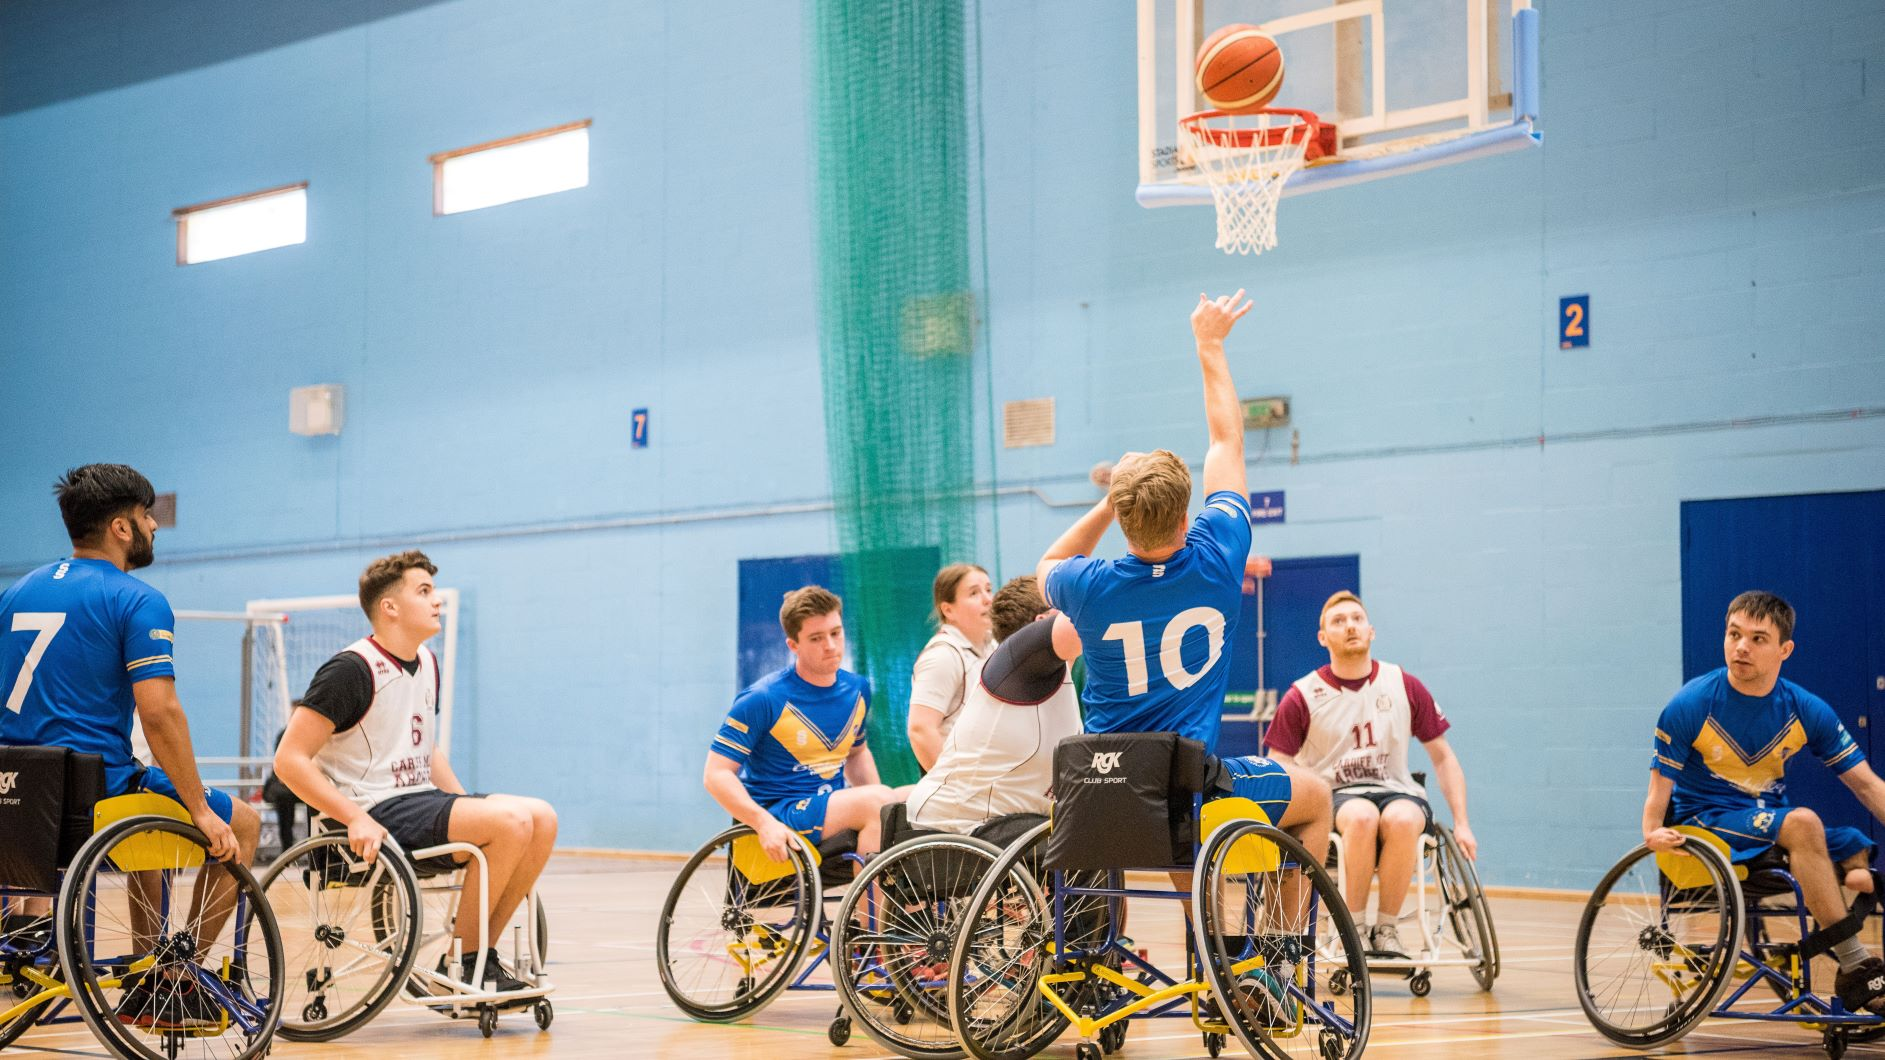 Wheelchair basketball teams playing